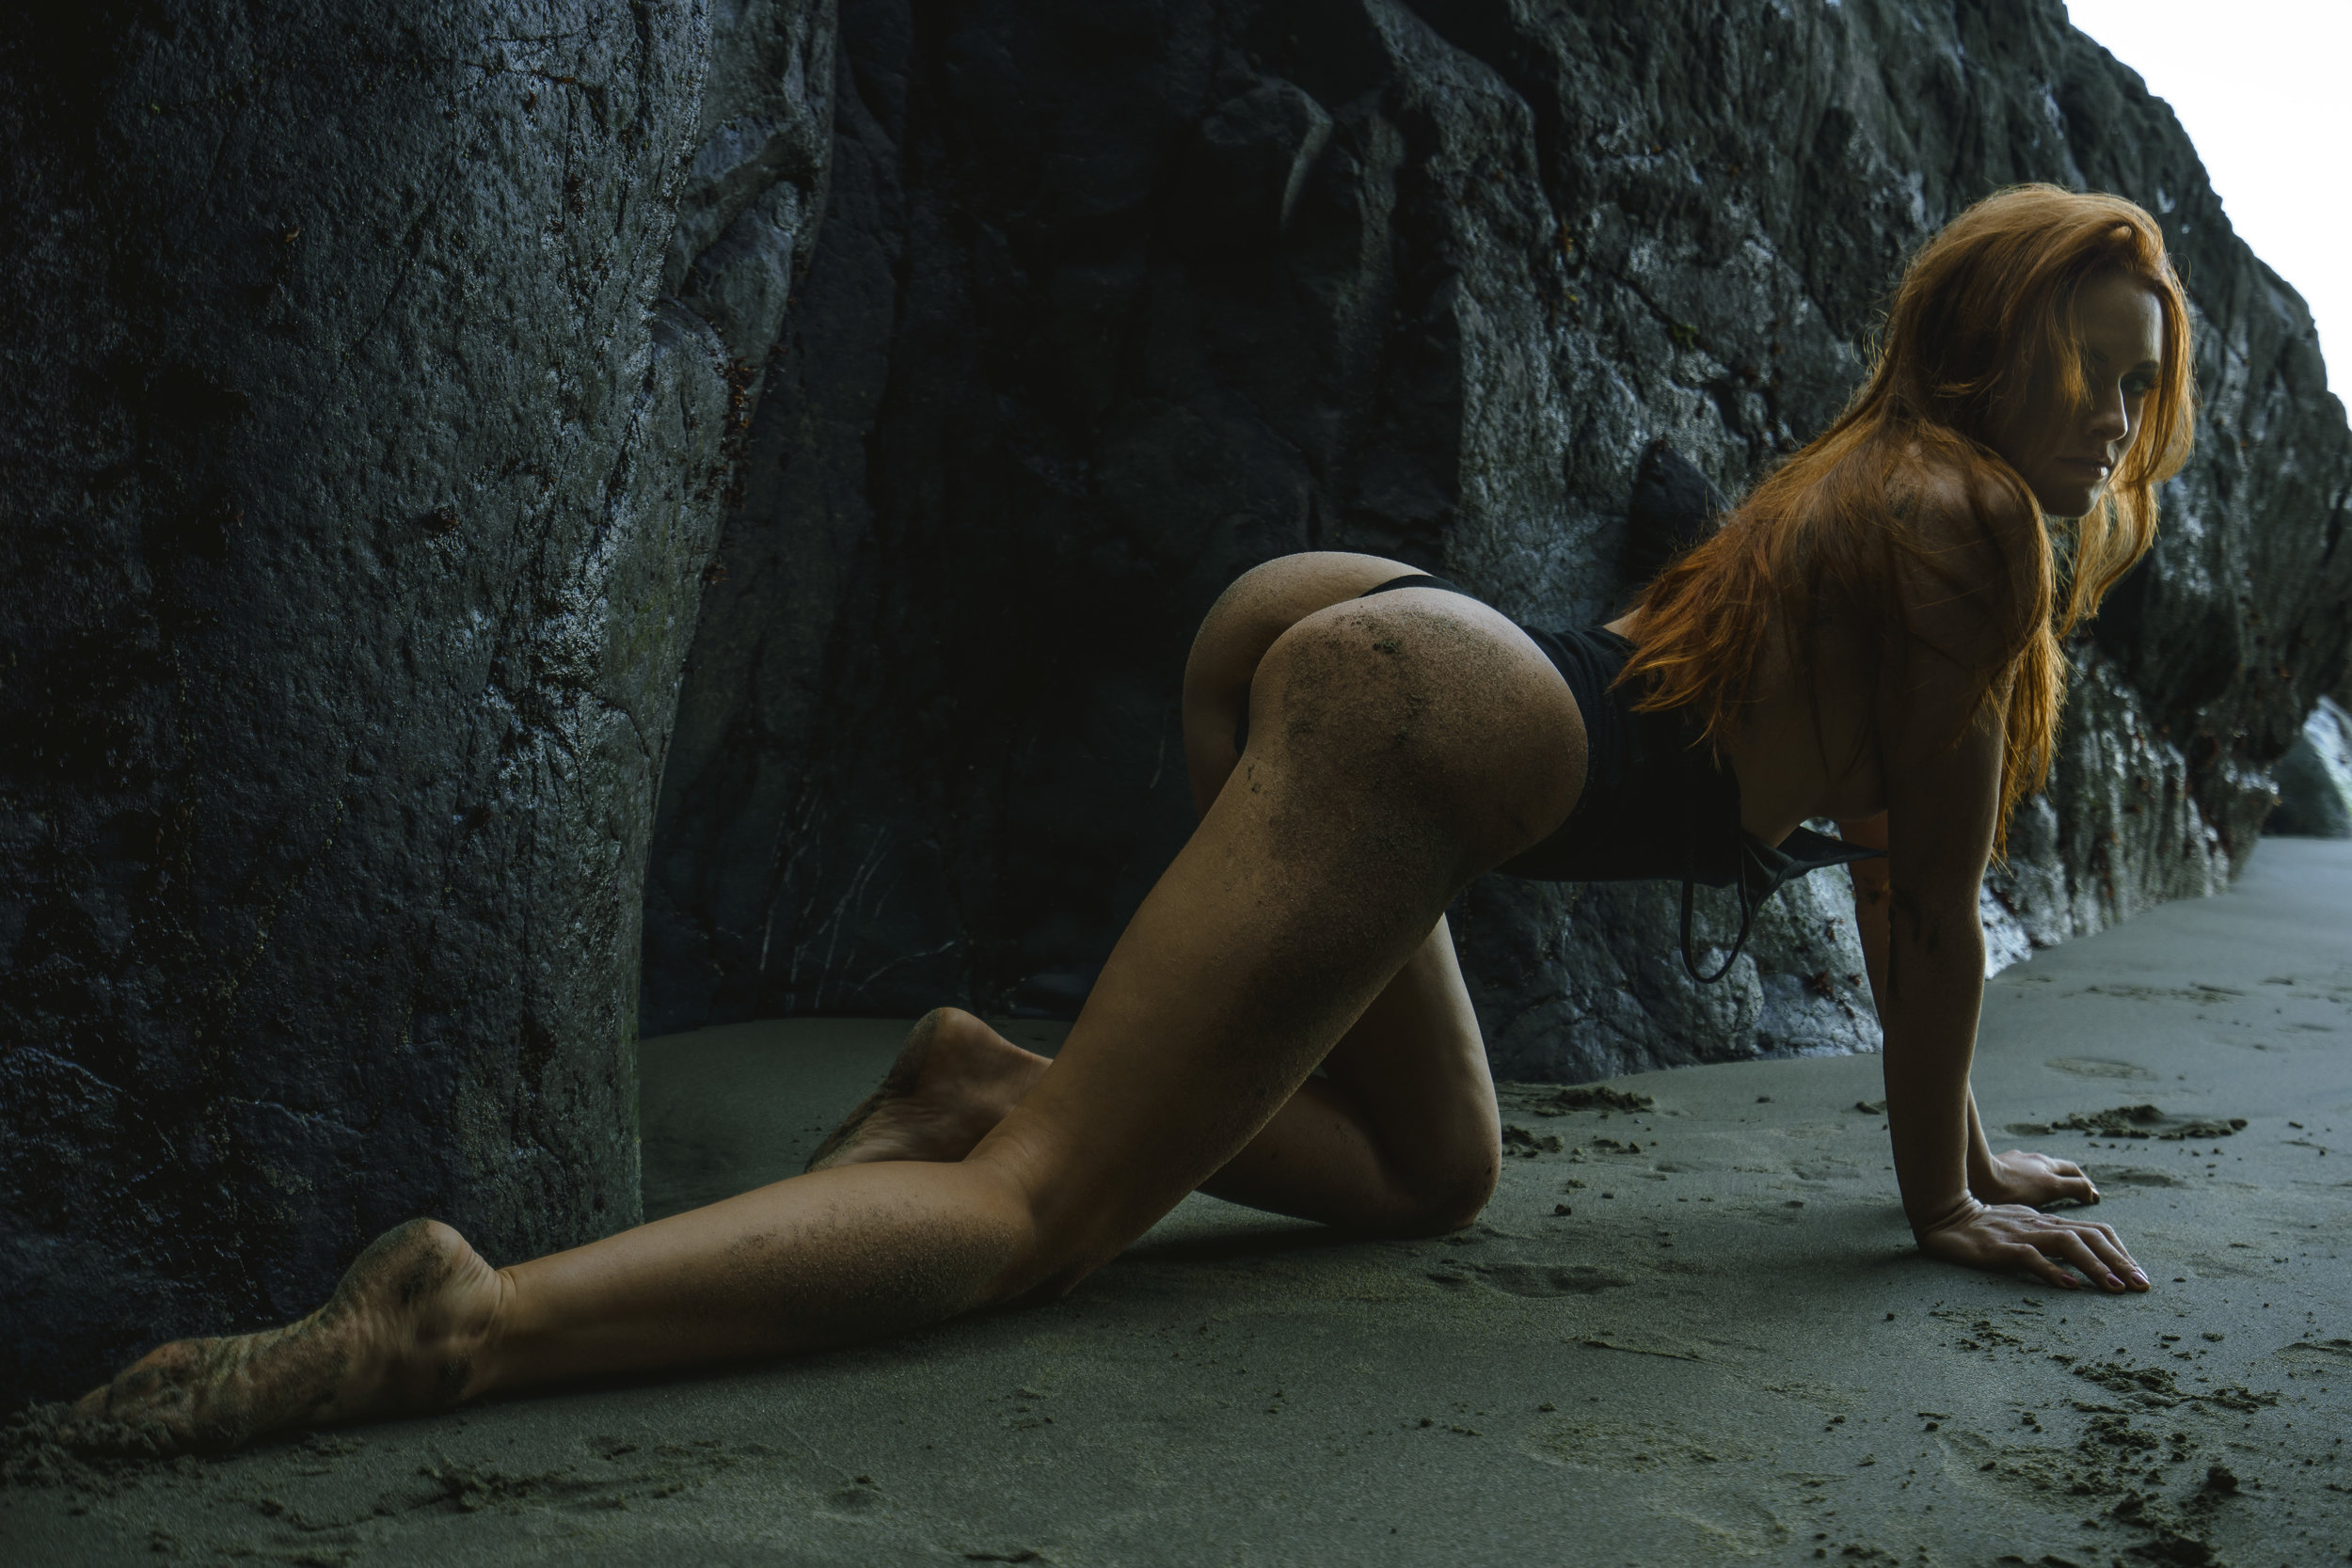 THE BEACH AT REDPOINT - Starring Imogen Absens